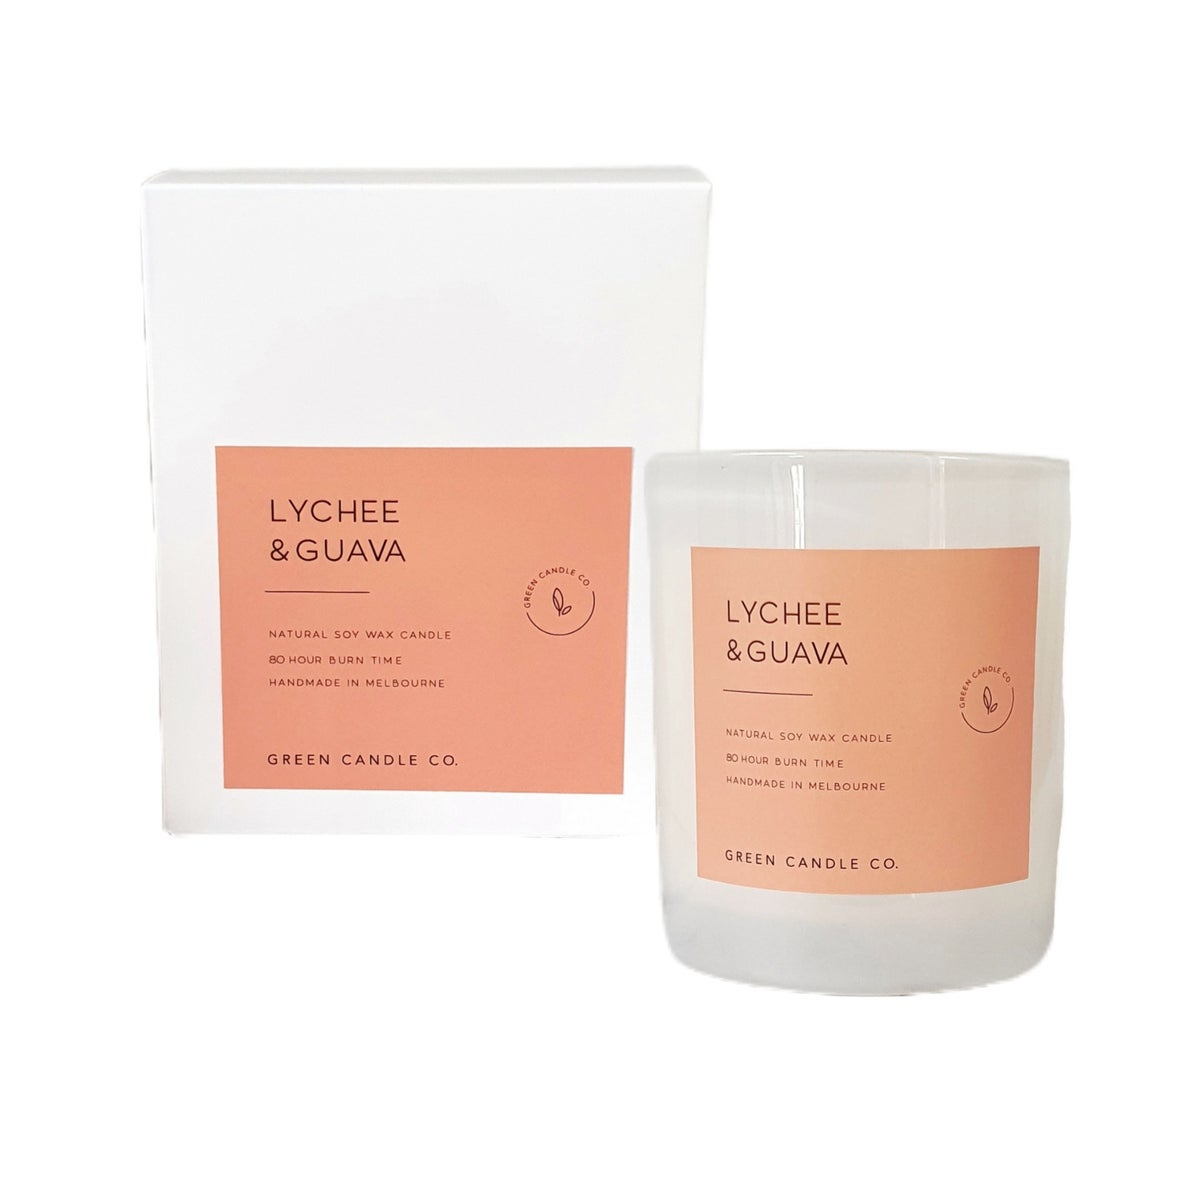 Image of LYCHEE & GUAVA Candle / Large